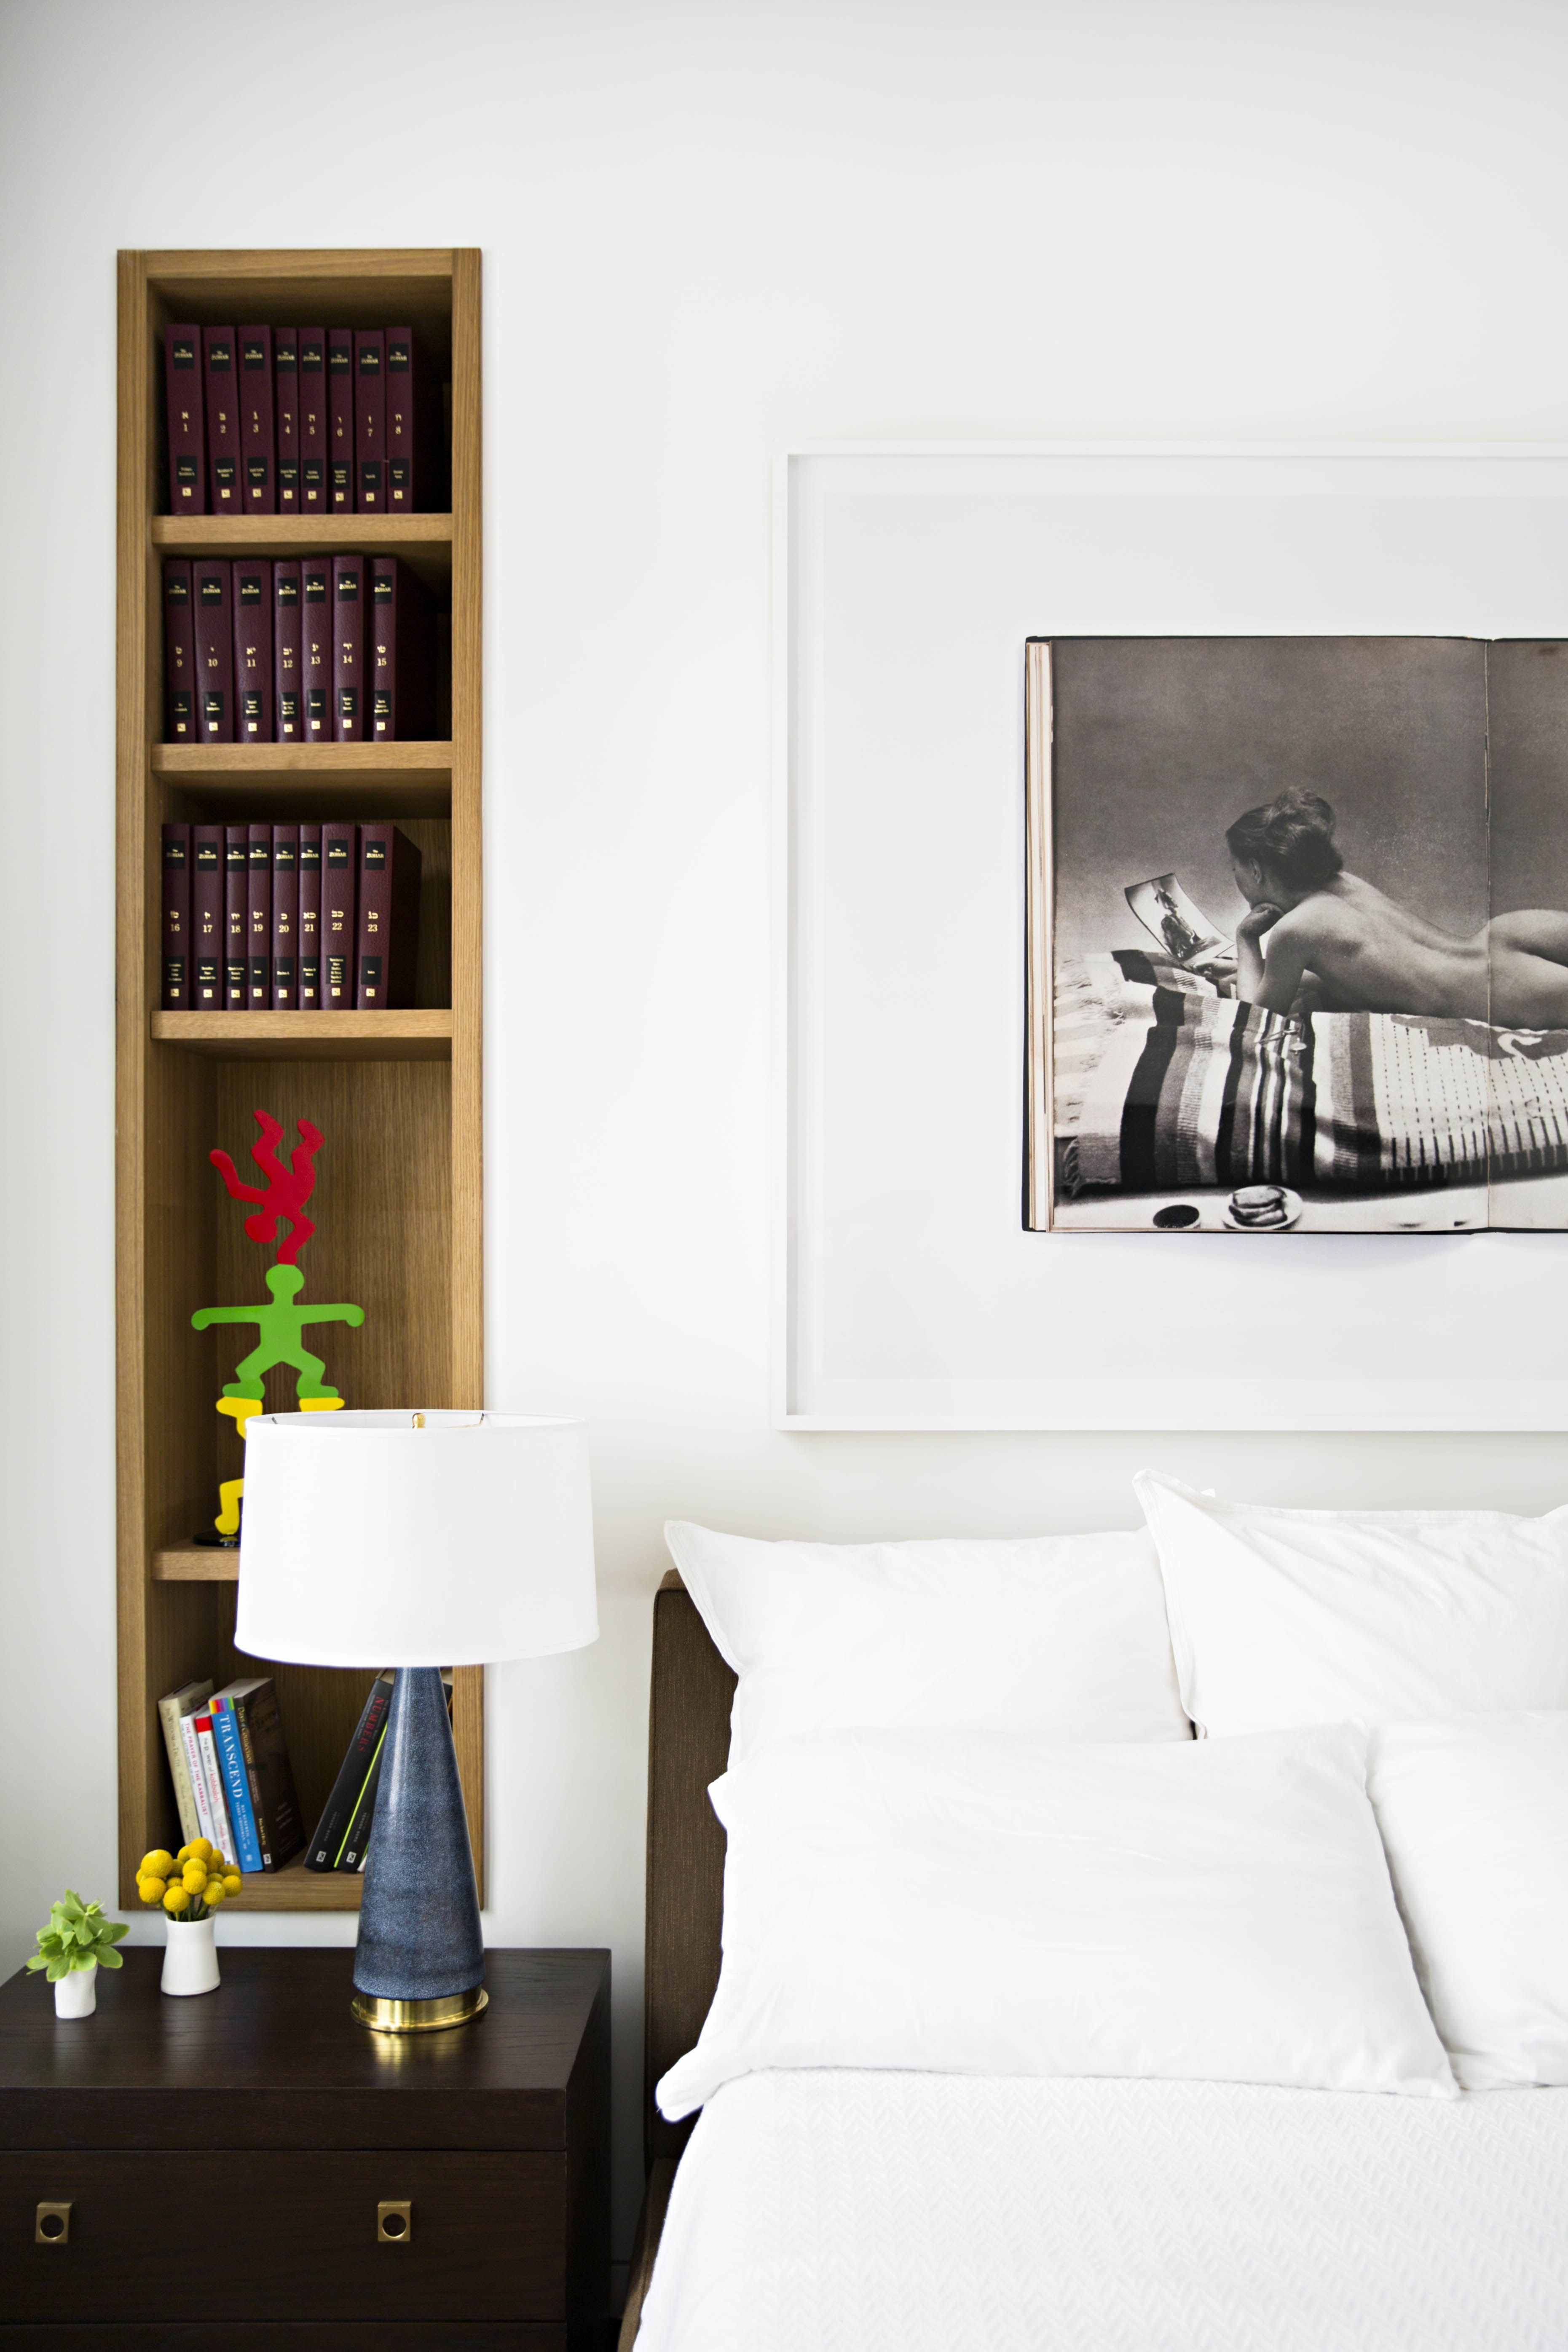 How to Make the Most of an Awkward Room Layout | Architectural ...